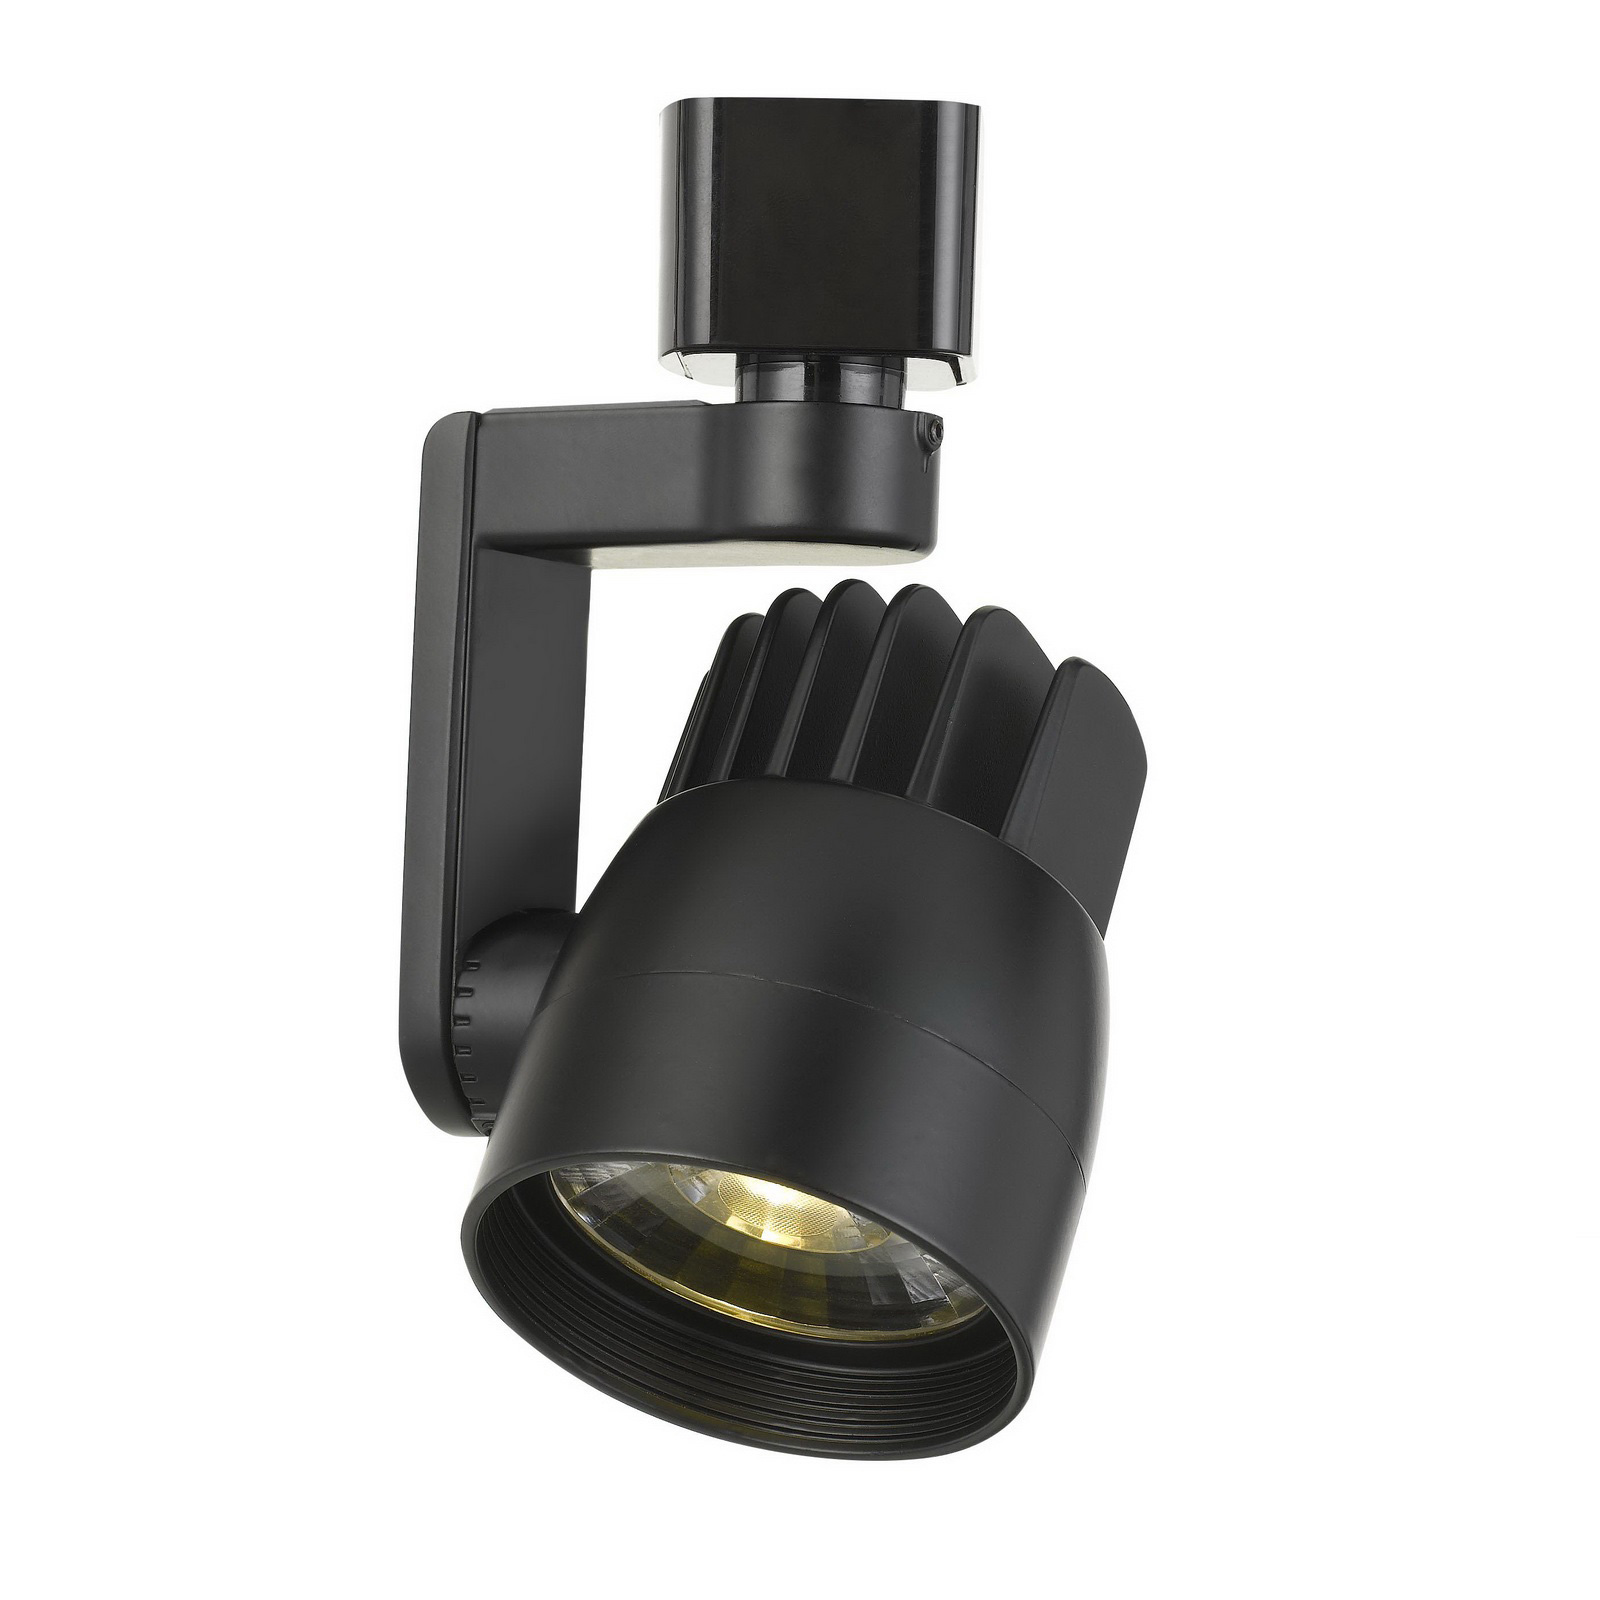 black track lighting fixtures. Product No. HT-806-BK Black Track Lighting Fixtures